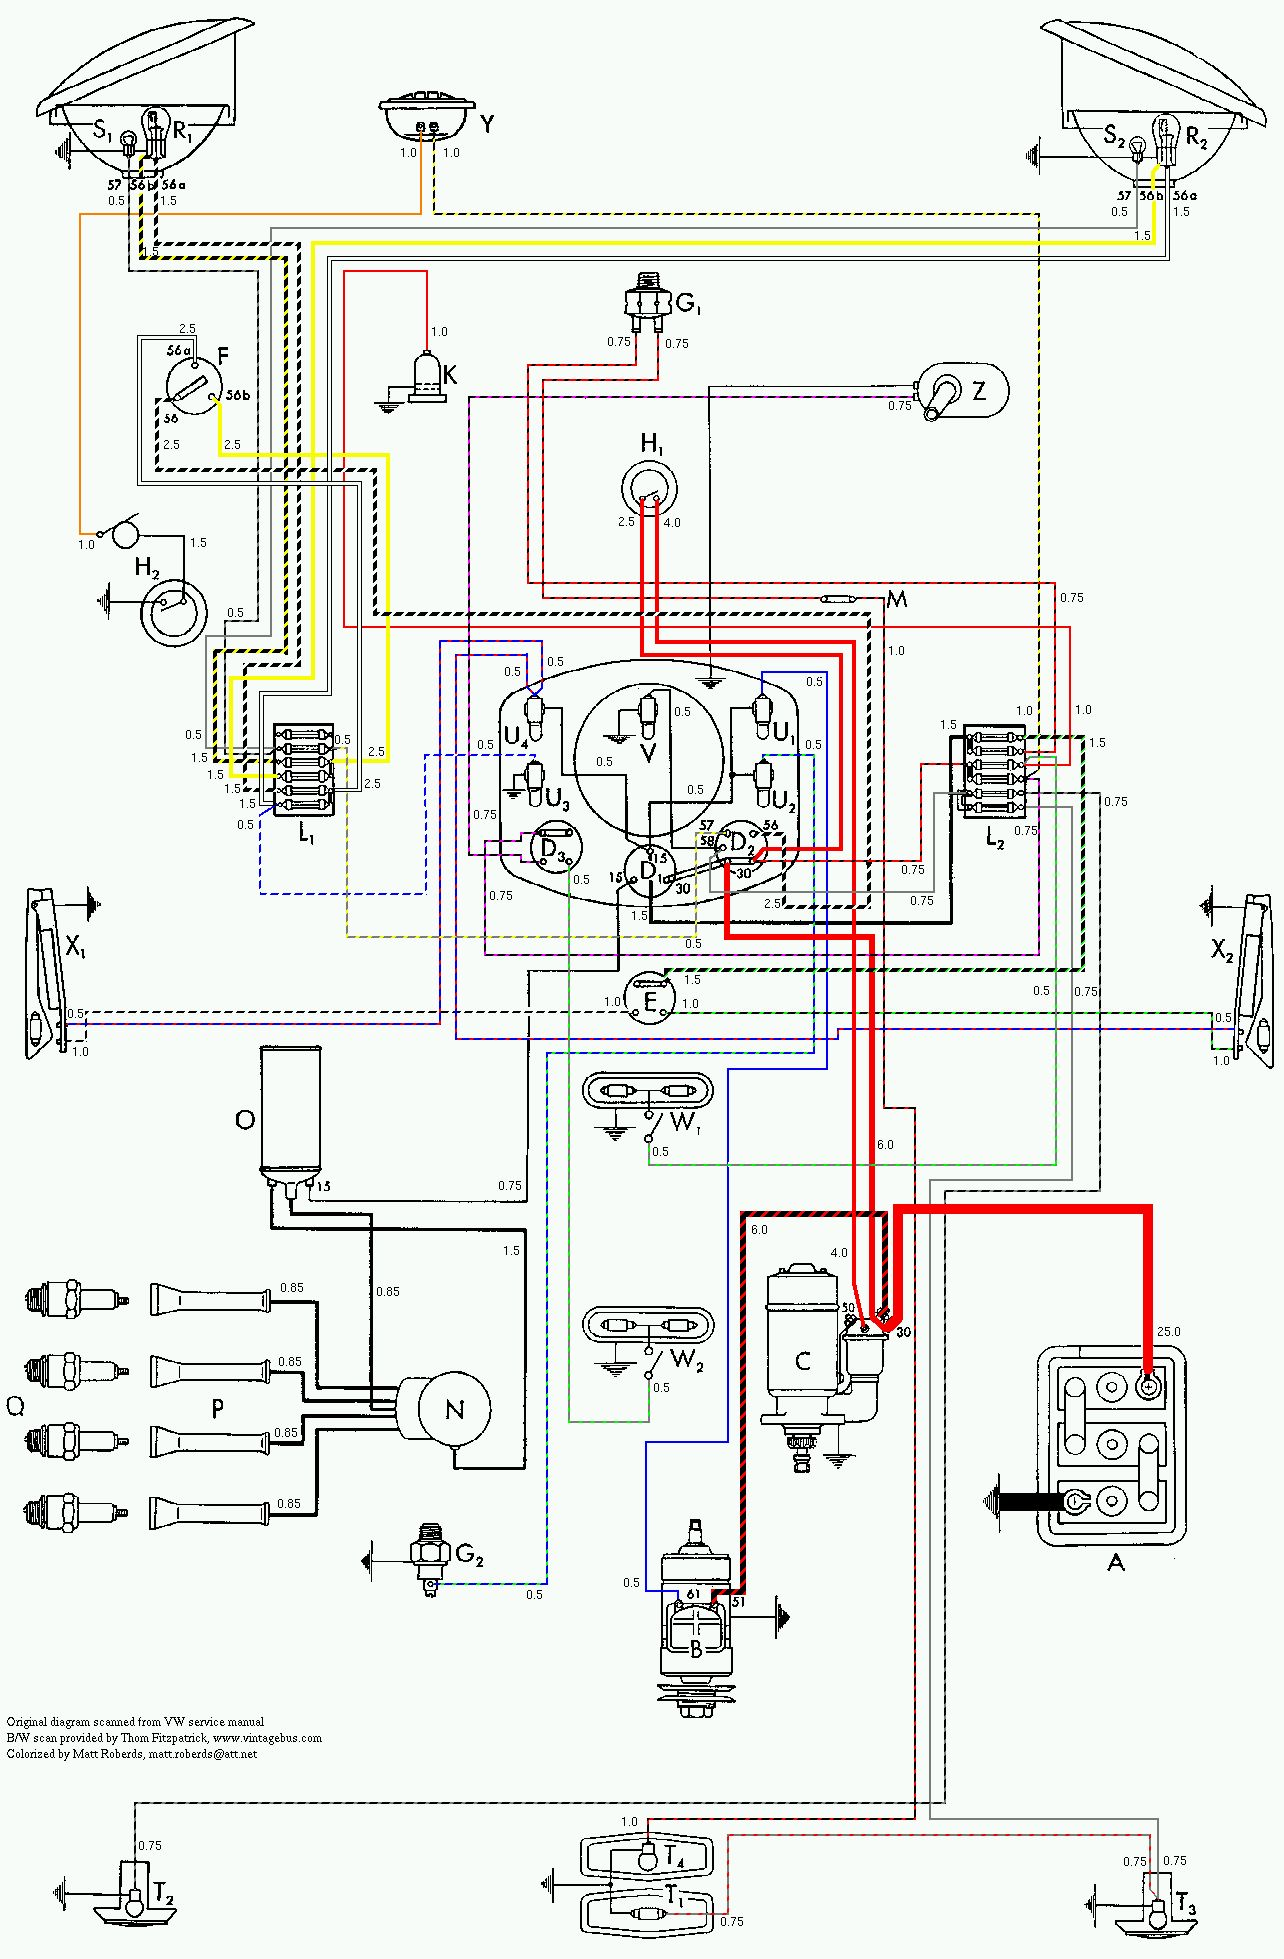 bus 53 color vintagebus com vw bus (and other) wiring diagrams Ford Model A Wiring Diagram at gsmportal.co